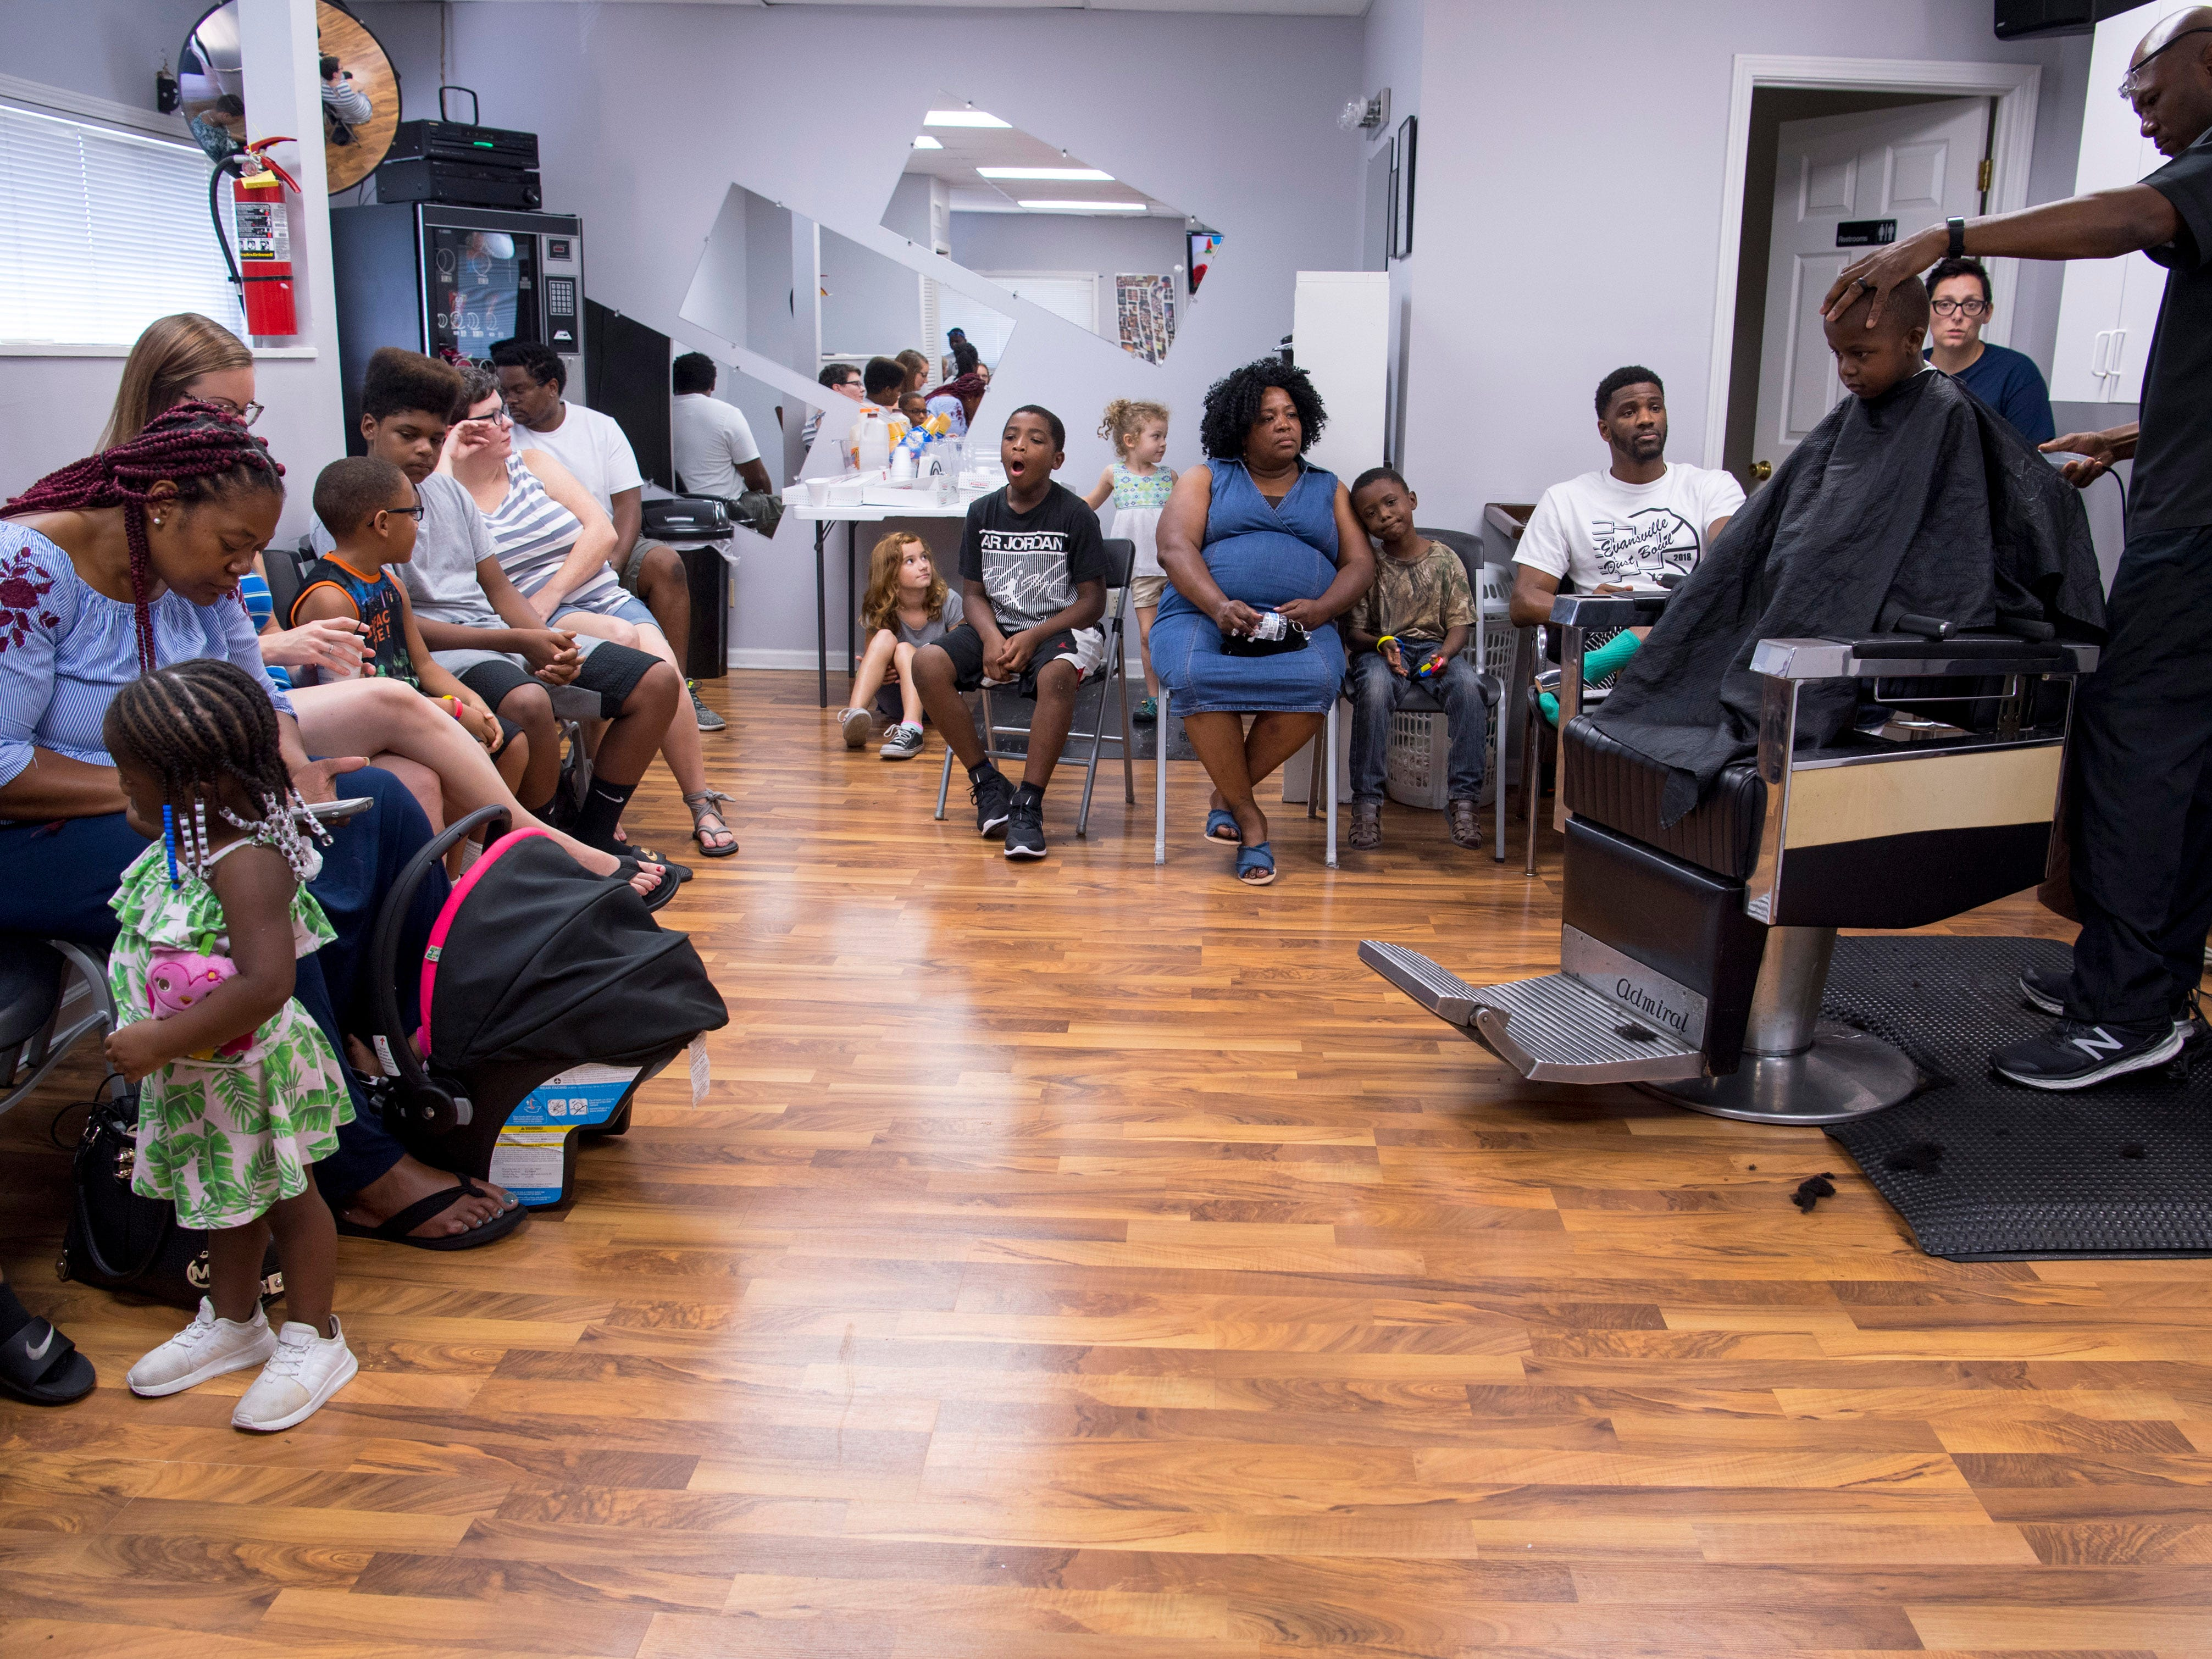 Families wait their turns for barbers Jerald Taylor and Demetrius Fingers (not pictured) to call their names for free haircuts at Jerald's Barbershop Monday.